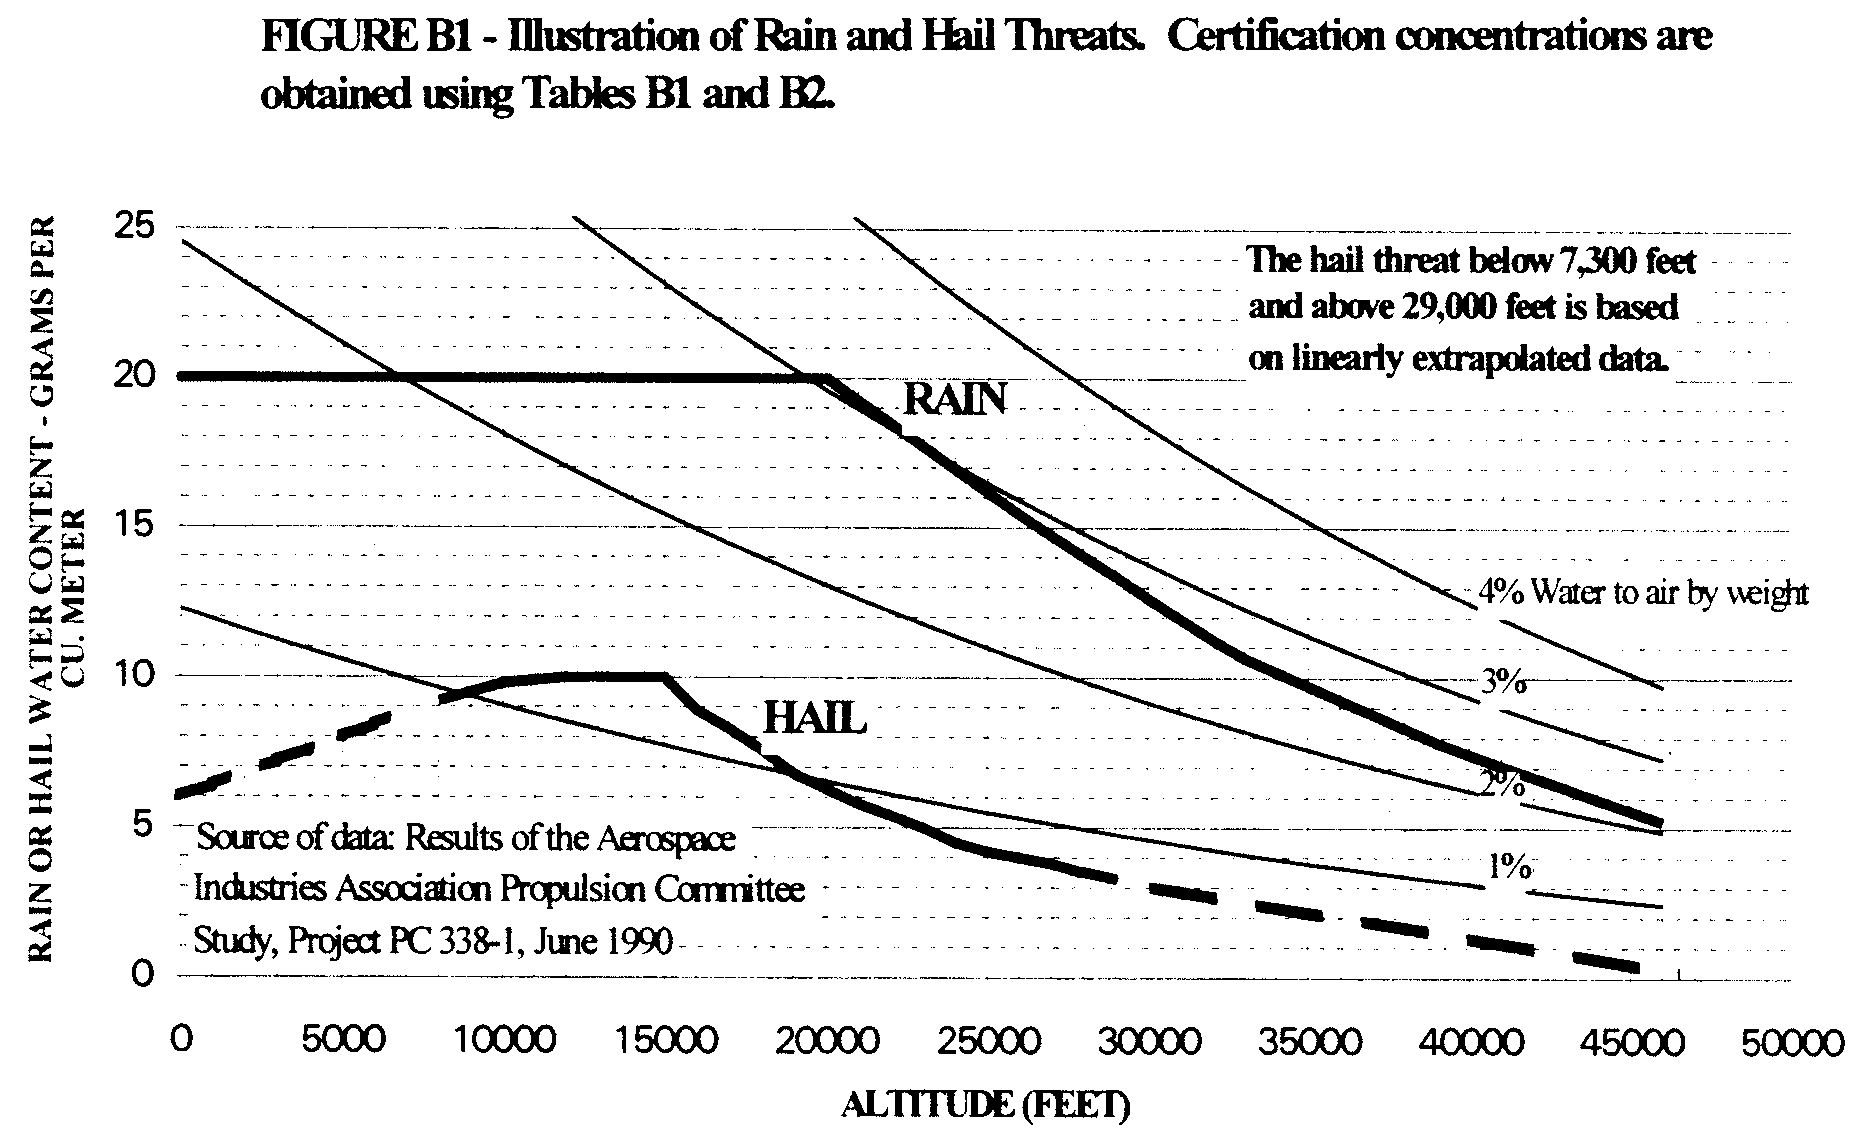 Graphic of Figure B1, Table B1, Table B2, Table B3, and Table B4 specify the atmospheric concentrations and size distributions of rain and hail for establishing certification, in accordance with the requirements of § 33.78(a)(2). In conducting tests, normally by spraying liquid water to simulate rain conditions and by delivering hail fabricated from ice to simulate hail conditions, the use of water droplets and hail having shapes, sizes and distributions of sizes other than those defined in this appendix B, or the use of a single size or shape for each water droplet or hail, can be accepted, provided that applicant shows that the substitution does not reduce the severity of the test.